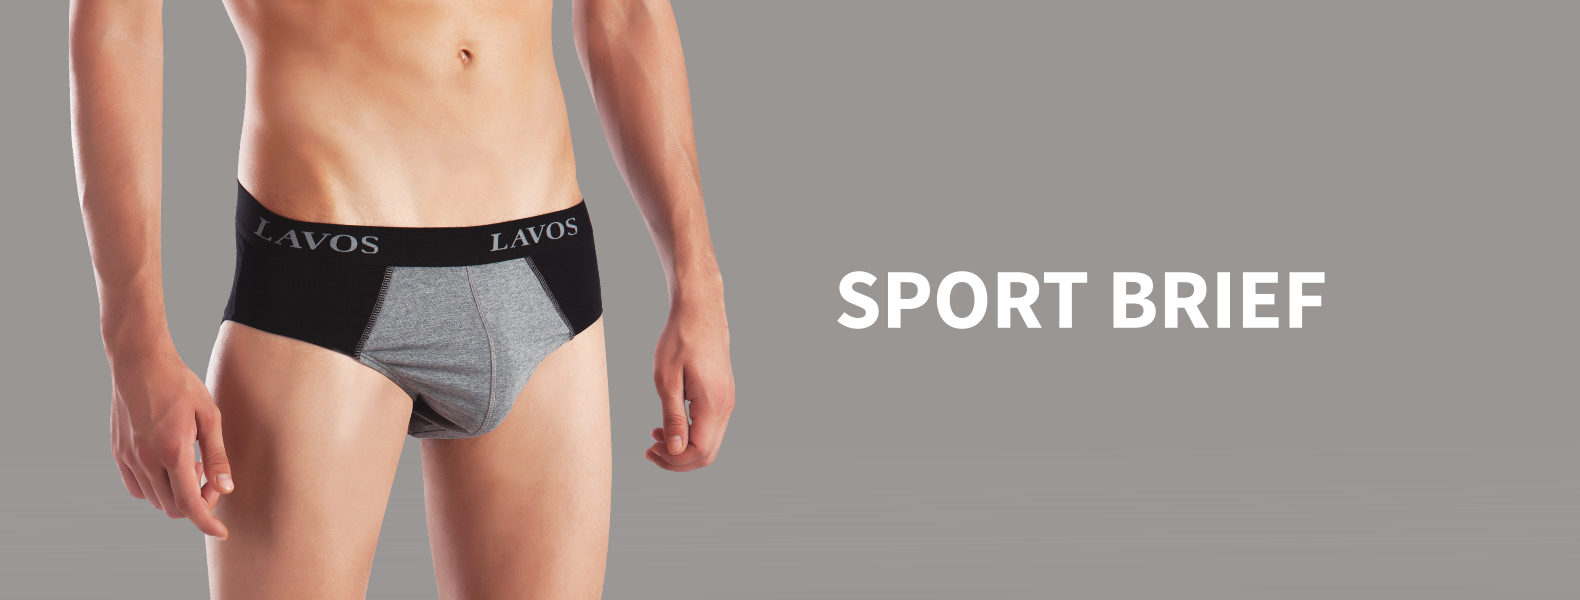 sports brief mens